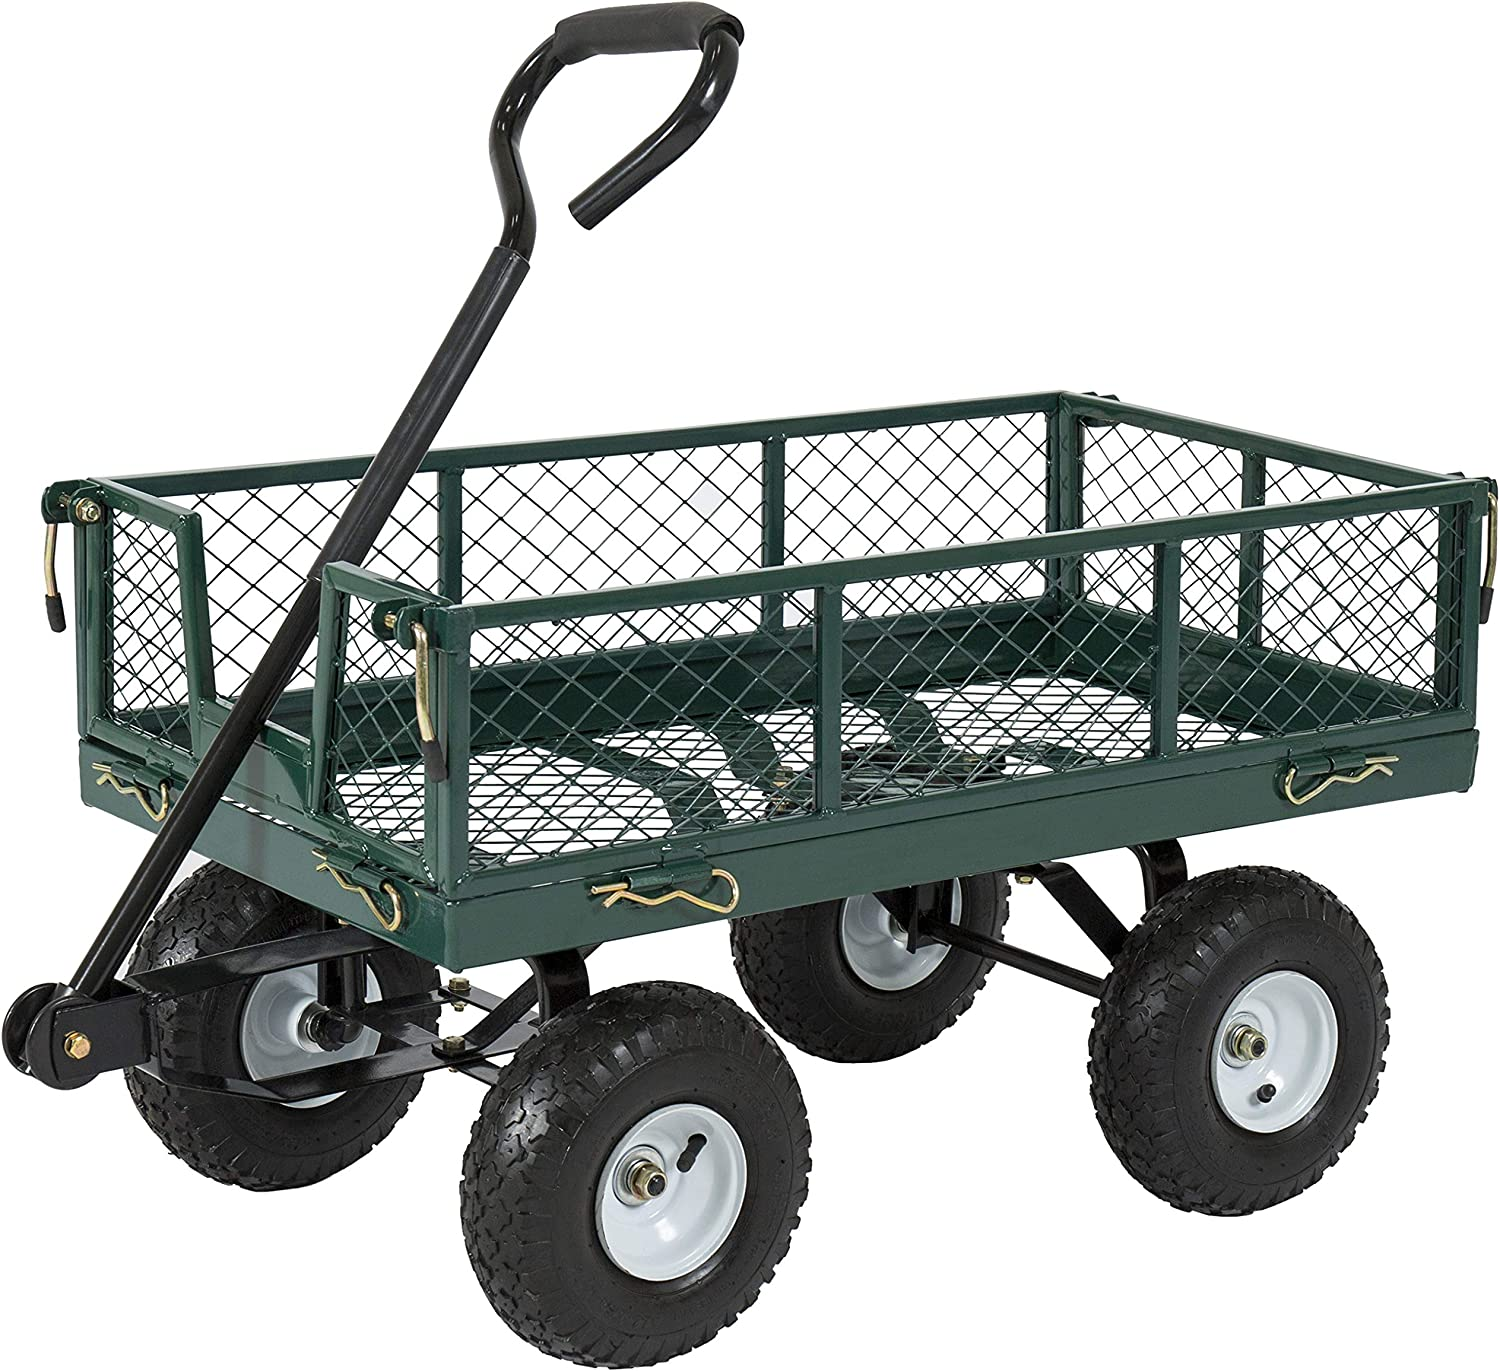 Best Choice Products Heavy-Duty Steel Garden Wagon Lawn Utility Cart w 400lb Capacity, Removable Sides, Long Handle, 10-Inch Tires